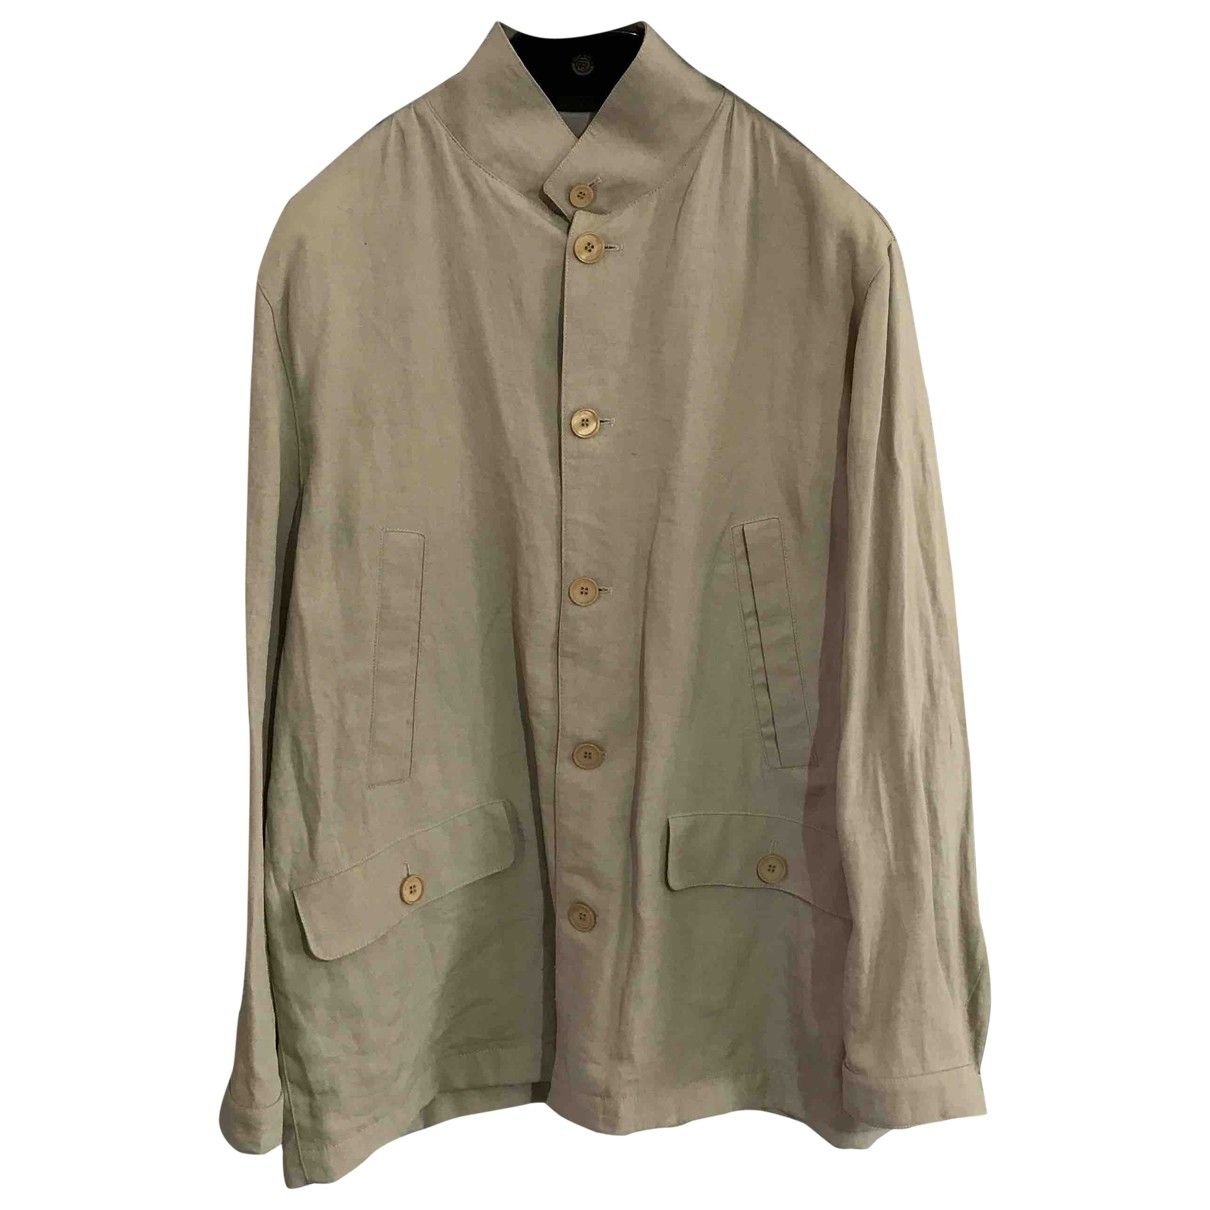 Corneliani \N Beige jacket  for Men 54 IT